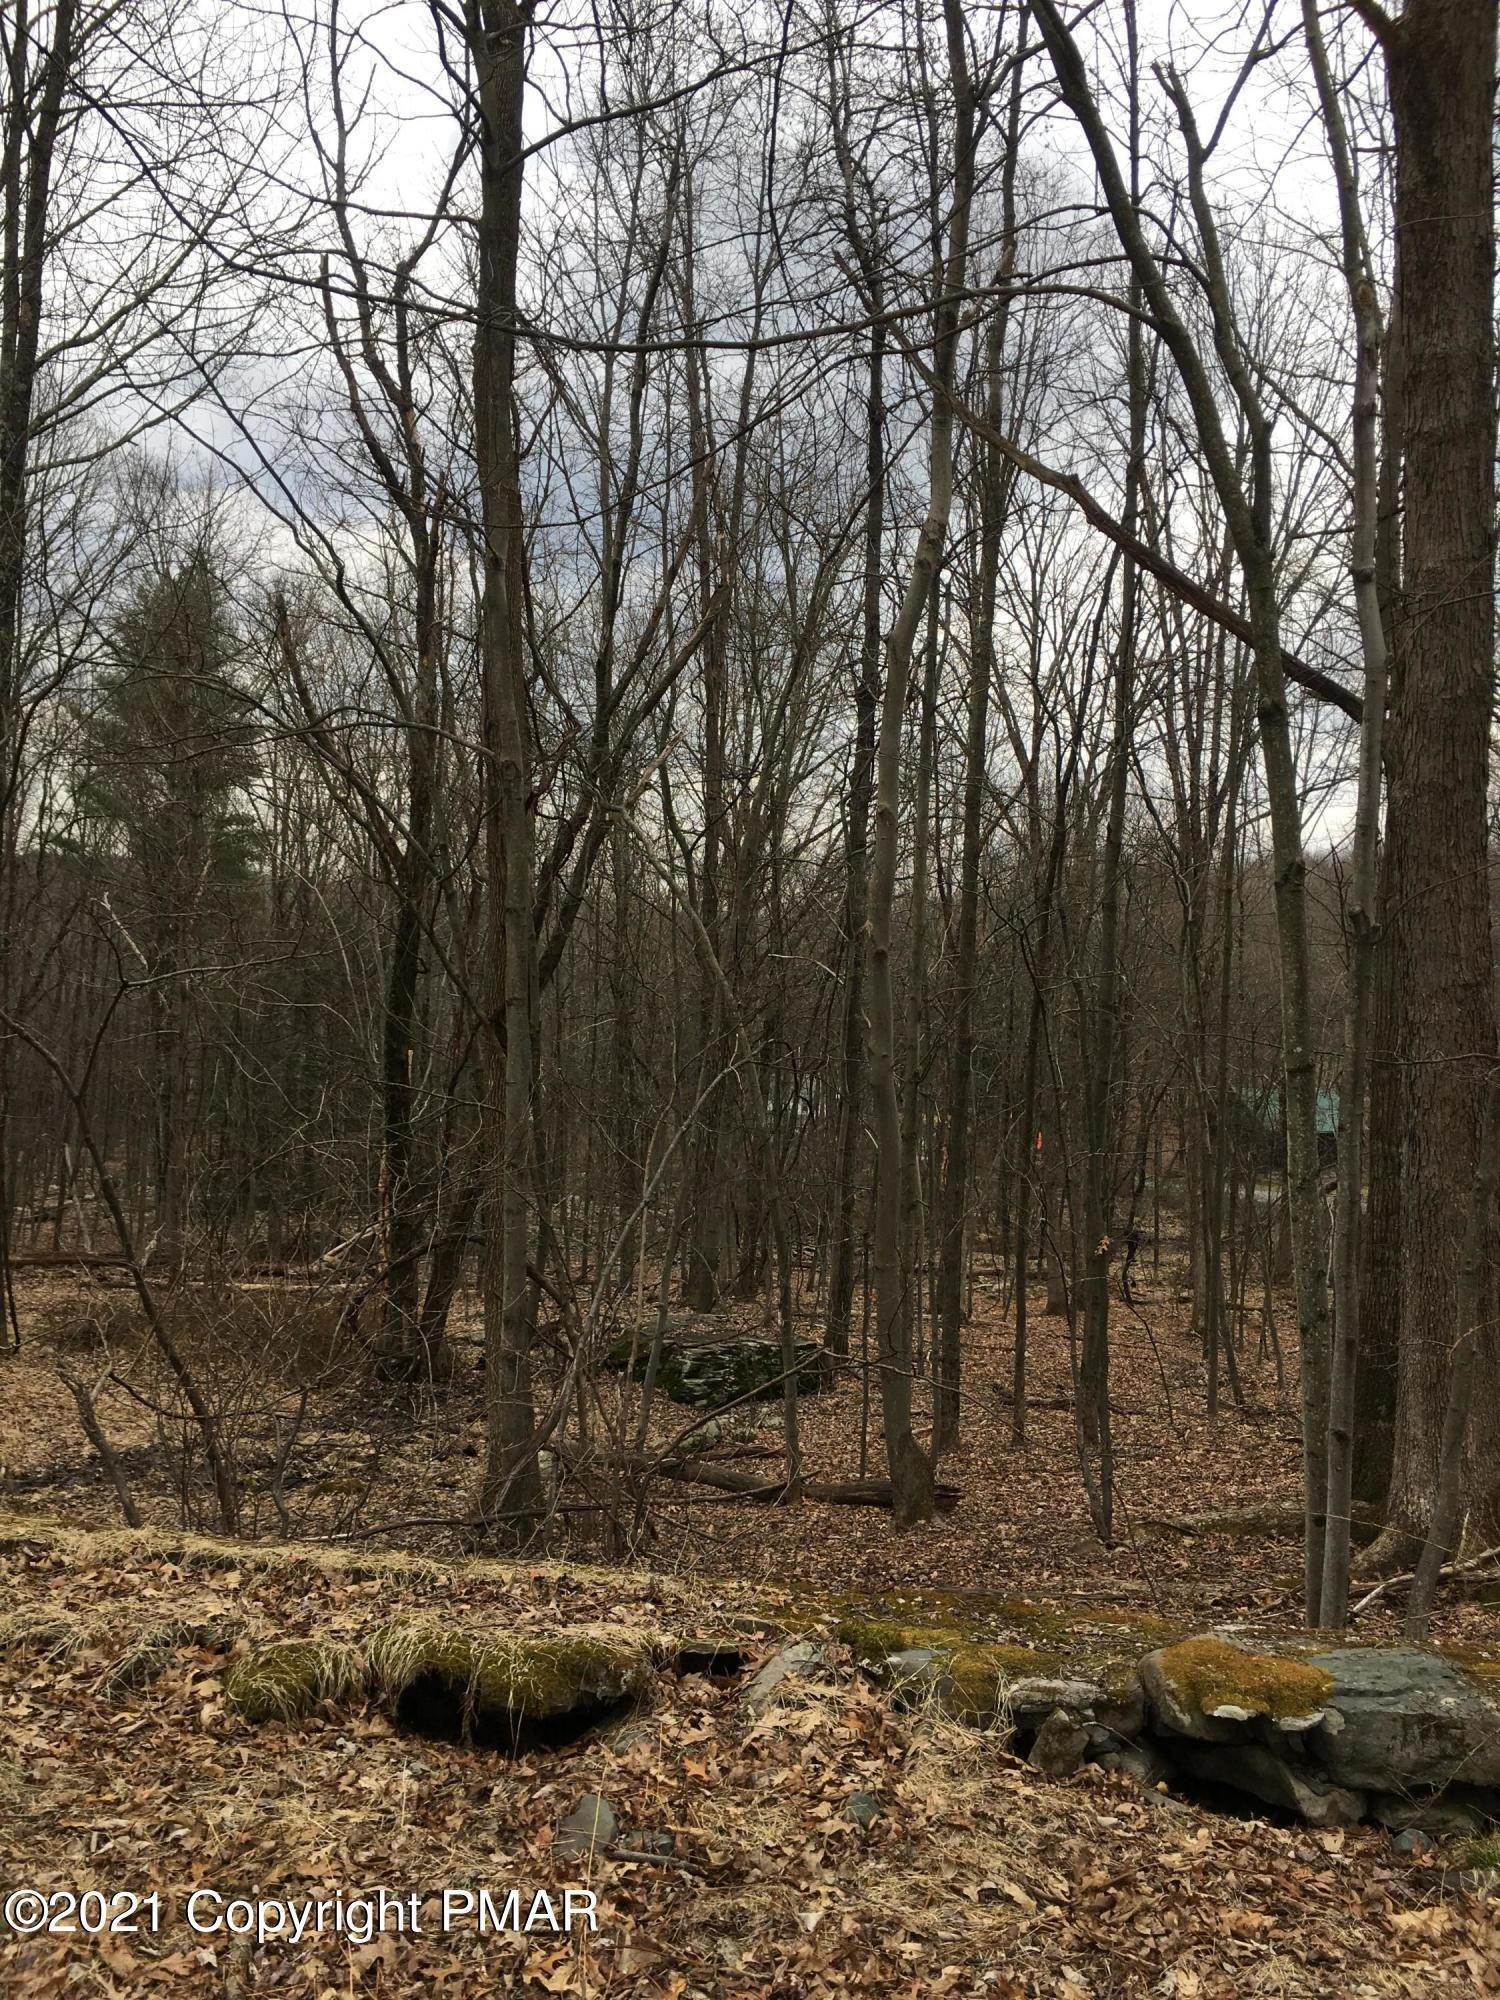 4. Land for Sale at 576 T Frantz Hill Rd Scotrun, Pennsylvania 18355 United States